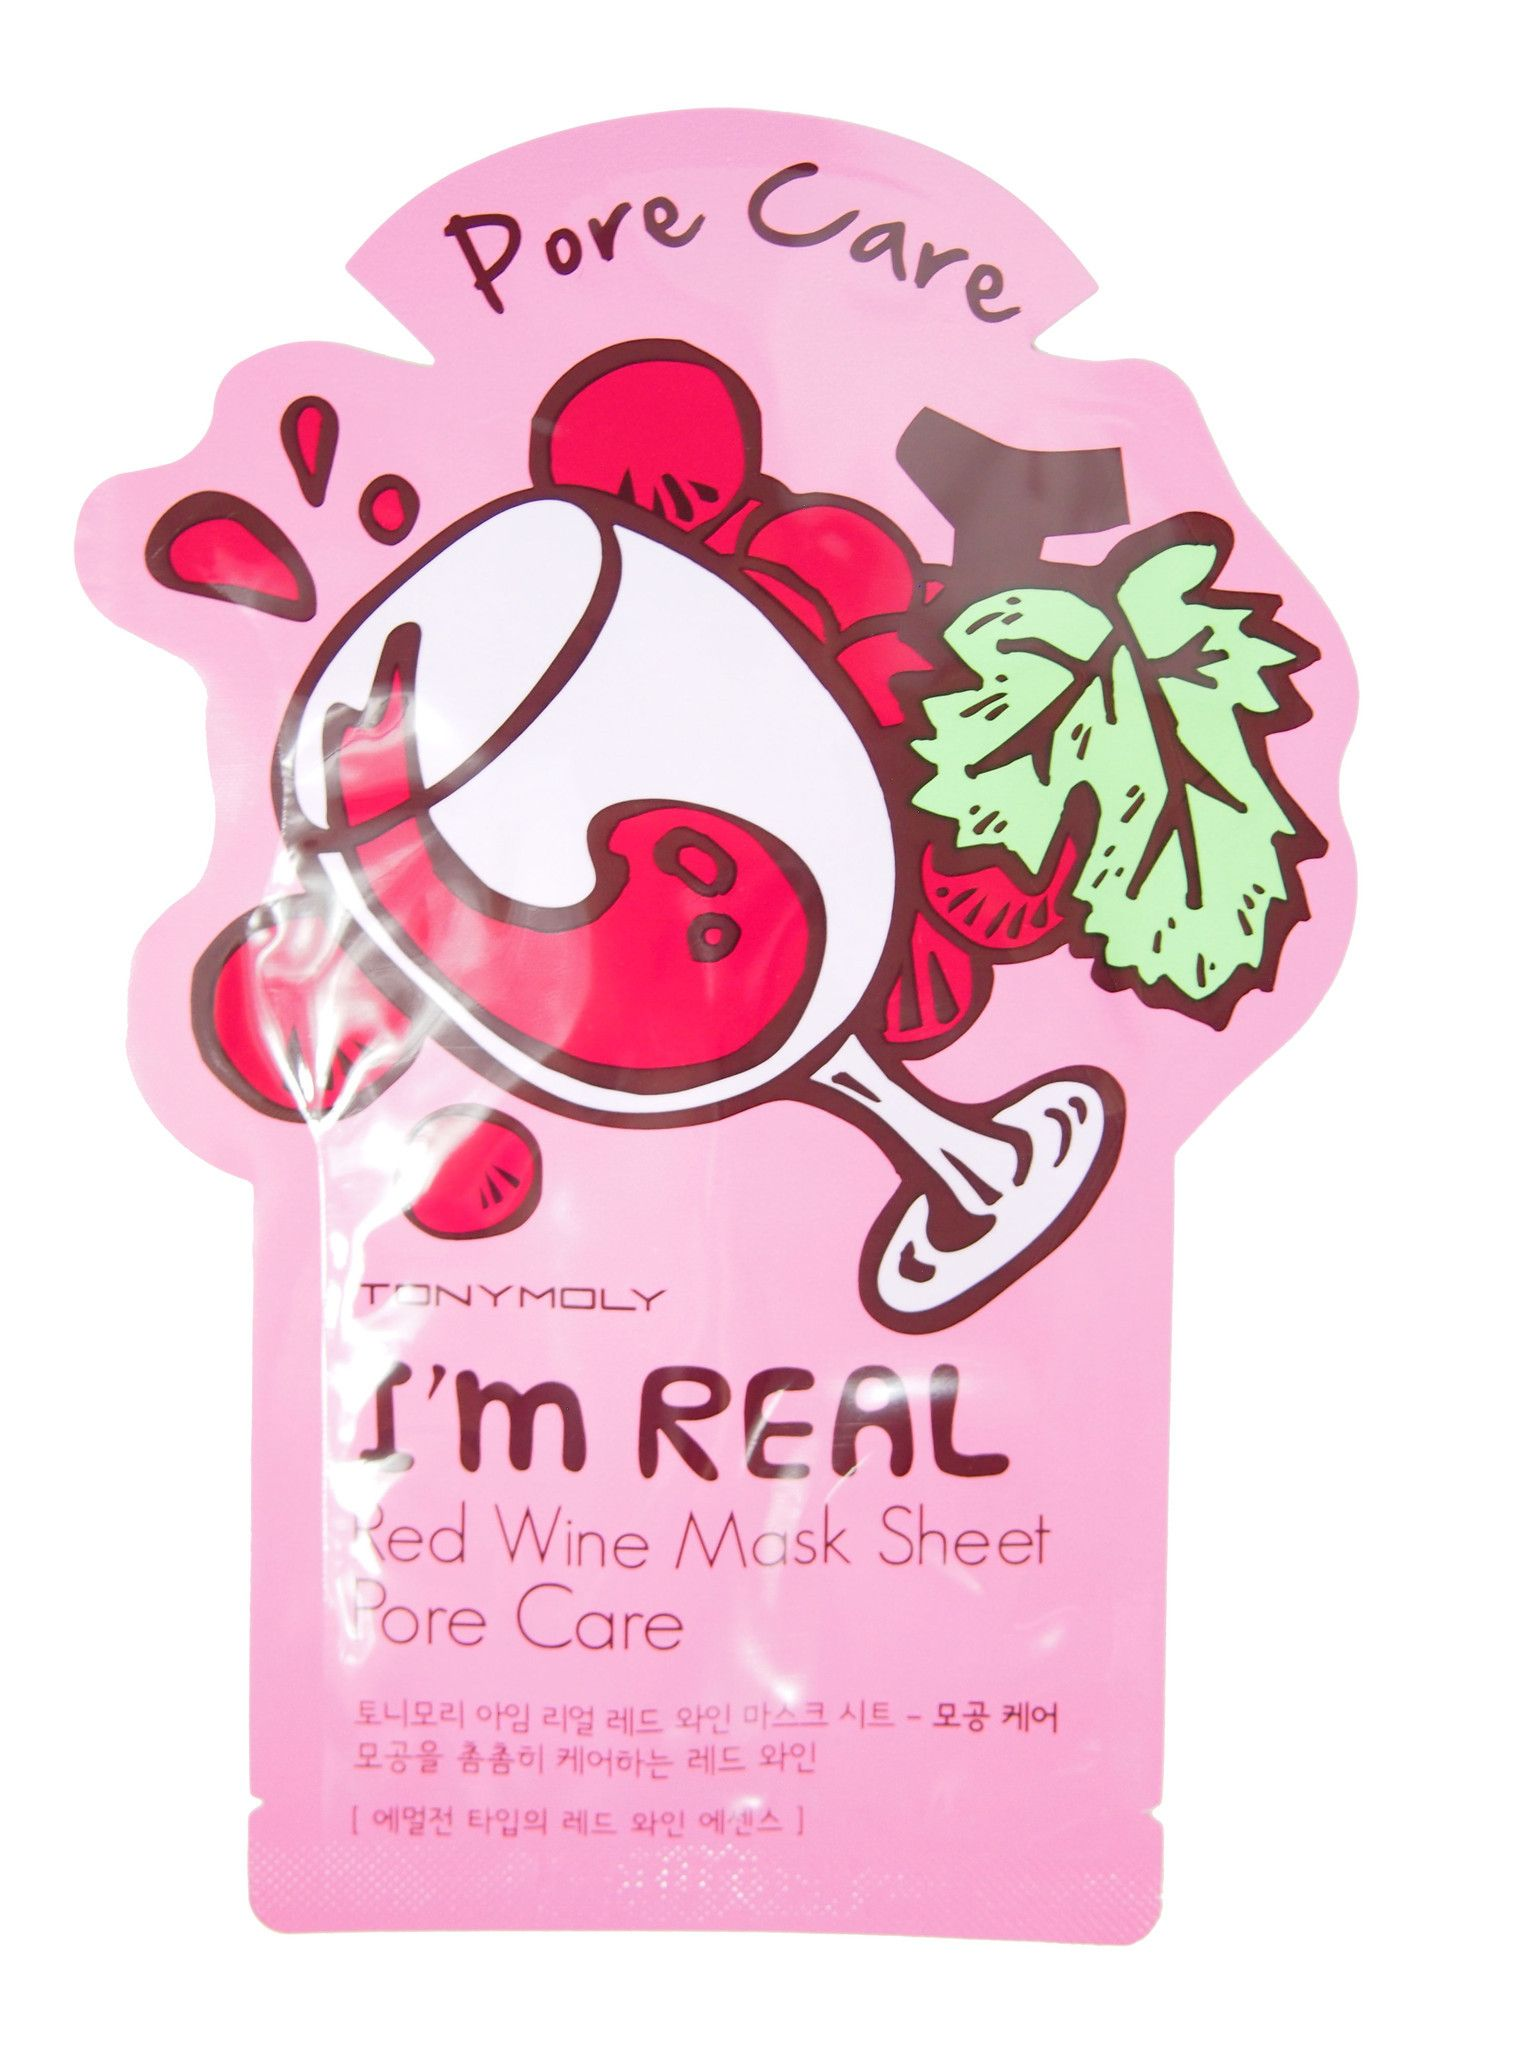 Tony Moly: I'm Real Red Wine Mask Sheet - Pore Care